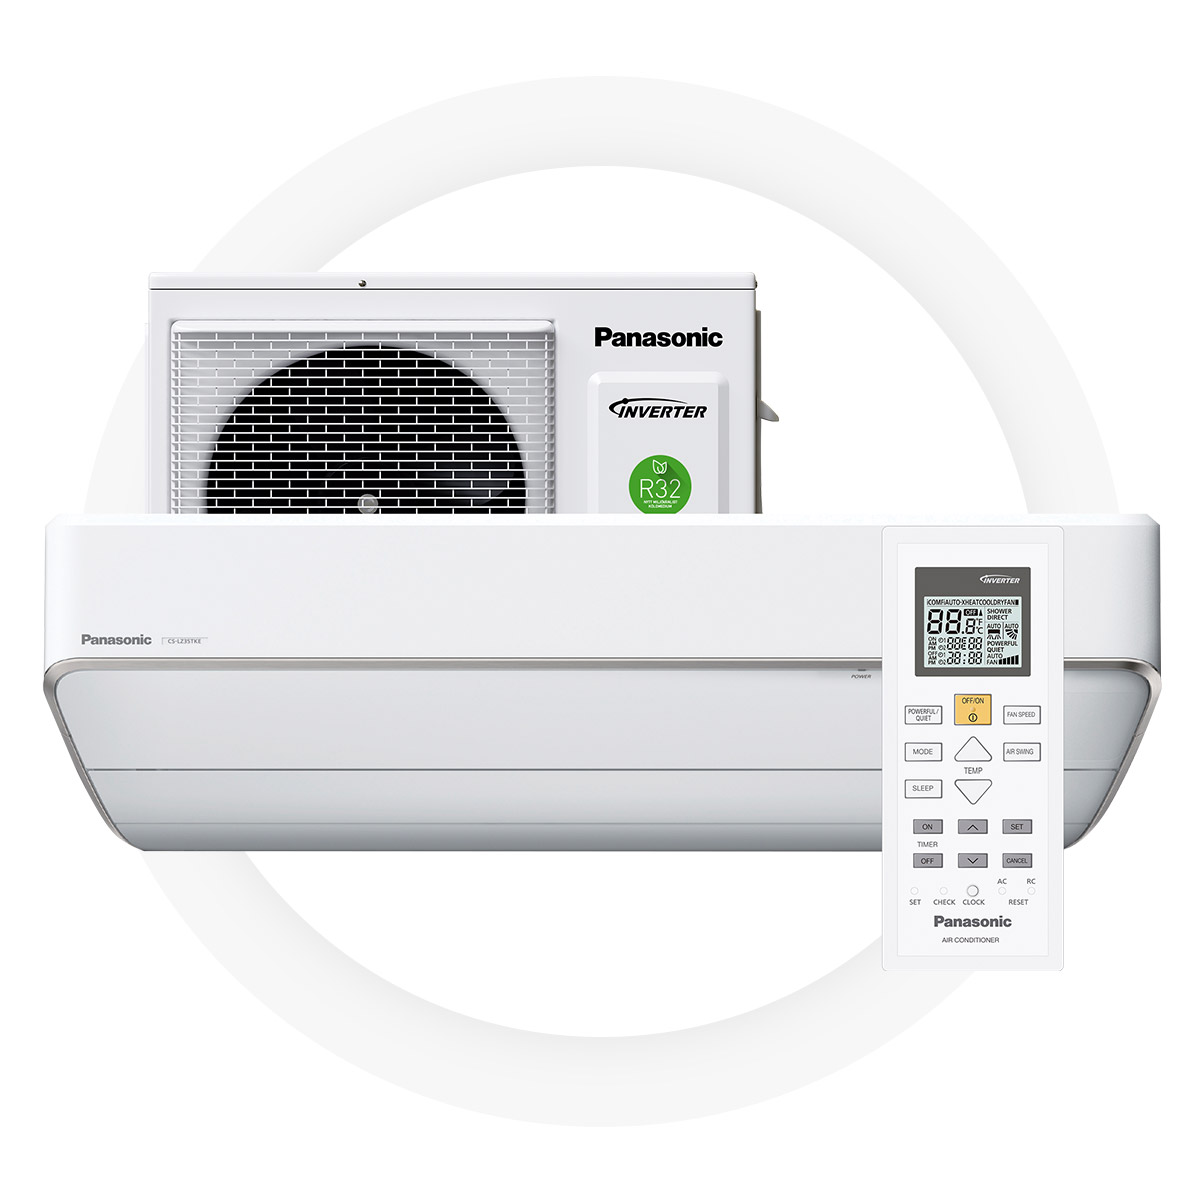 Panasonic lz25-TKE - High Seasonal Coefficient of Performance of 5,0 generates remarkable savingsA++ energy efficiencyEfficient and reliable even at -35°C ambient temperatureSuperbly silent work mode – only 18 dB5 year full factory warranty by Panasonic